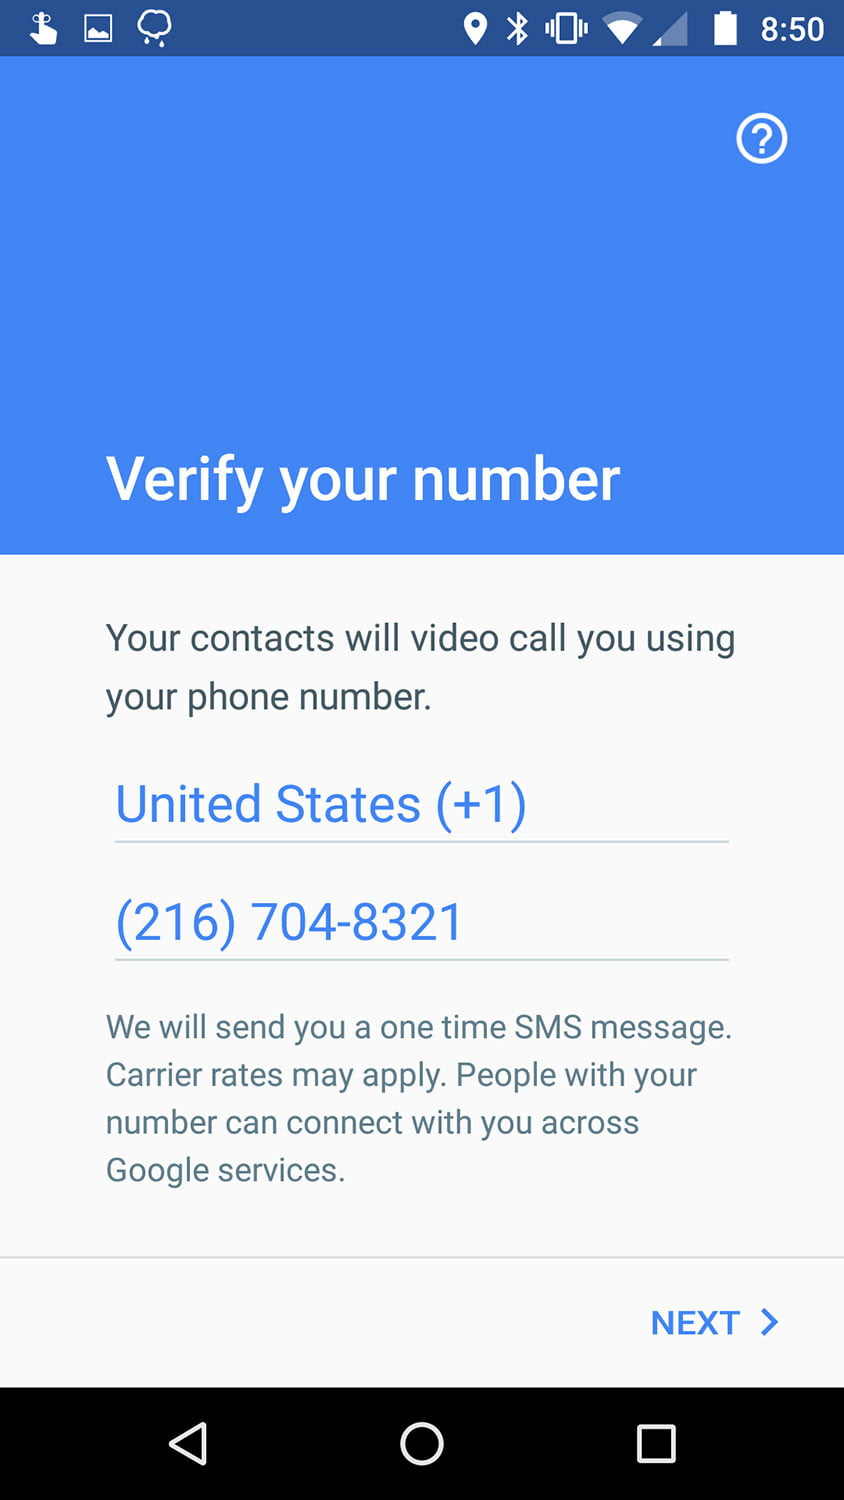 Google Duo Chat App Hands On Review | Digital Trends